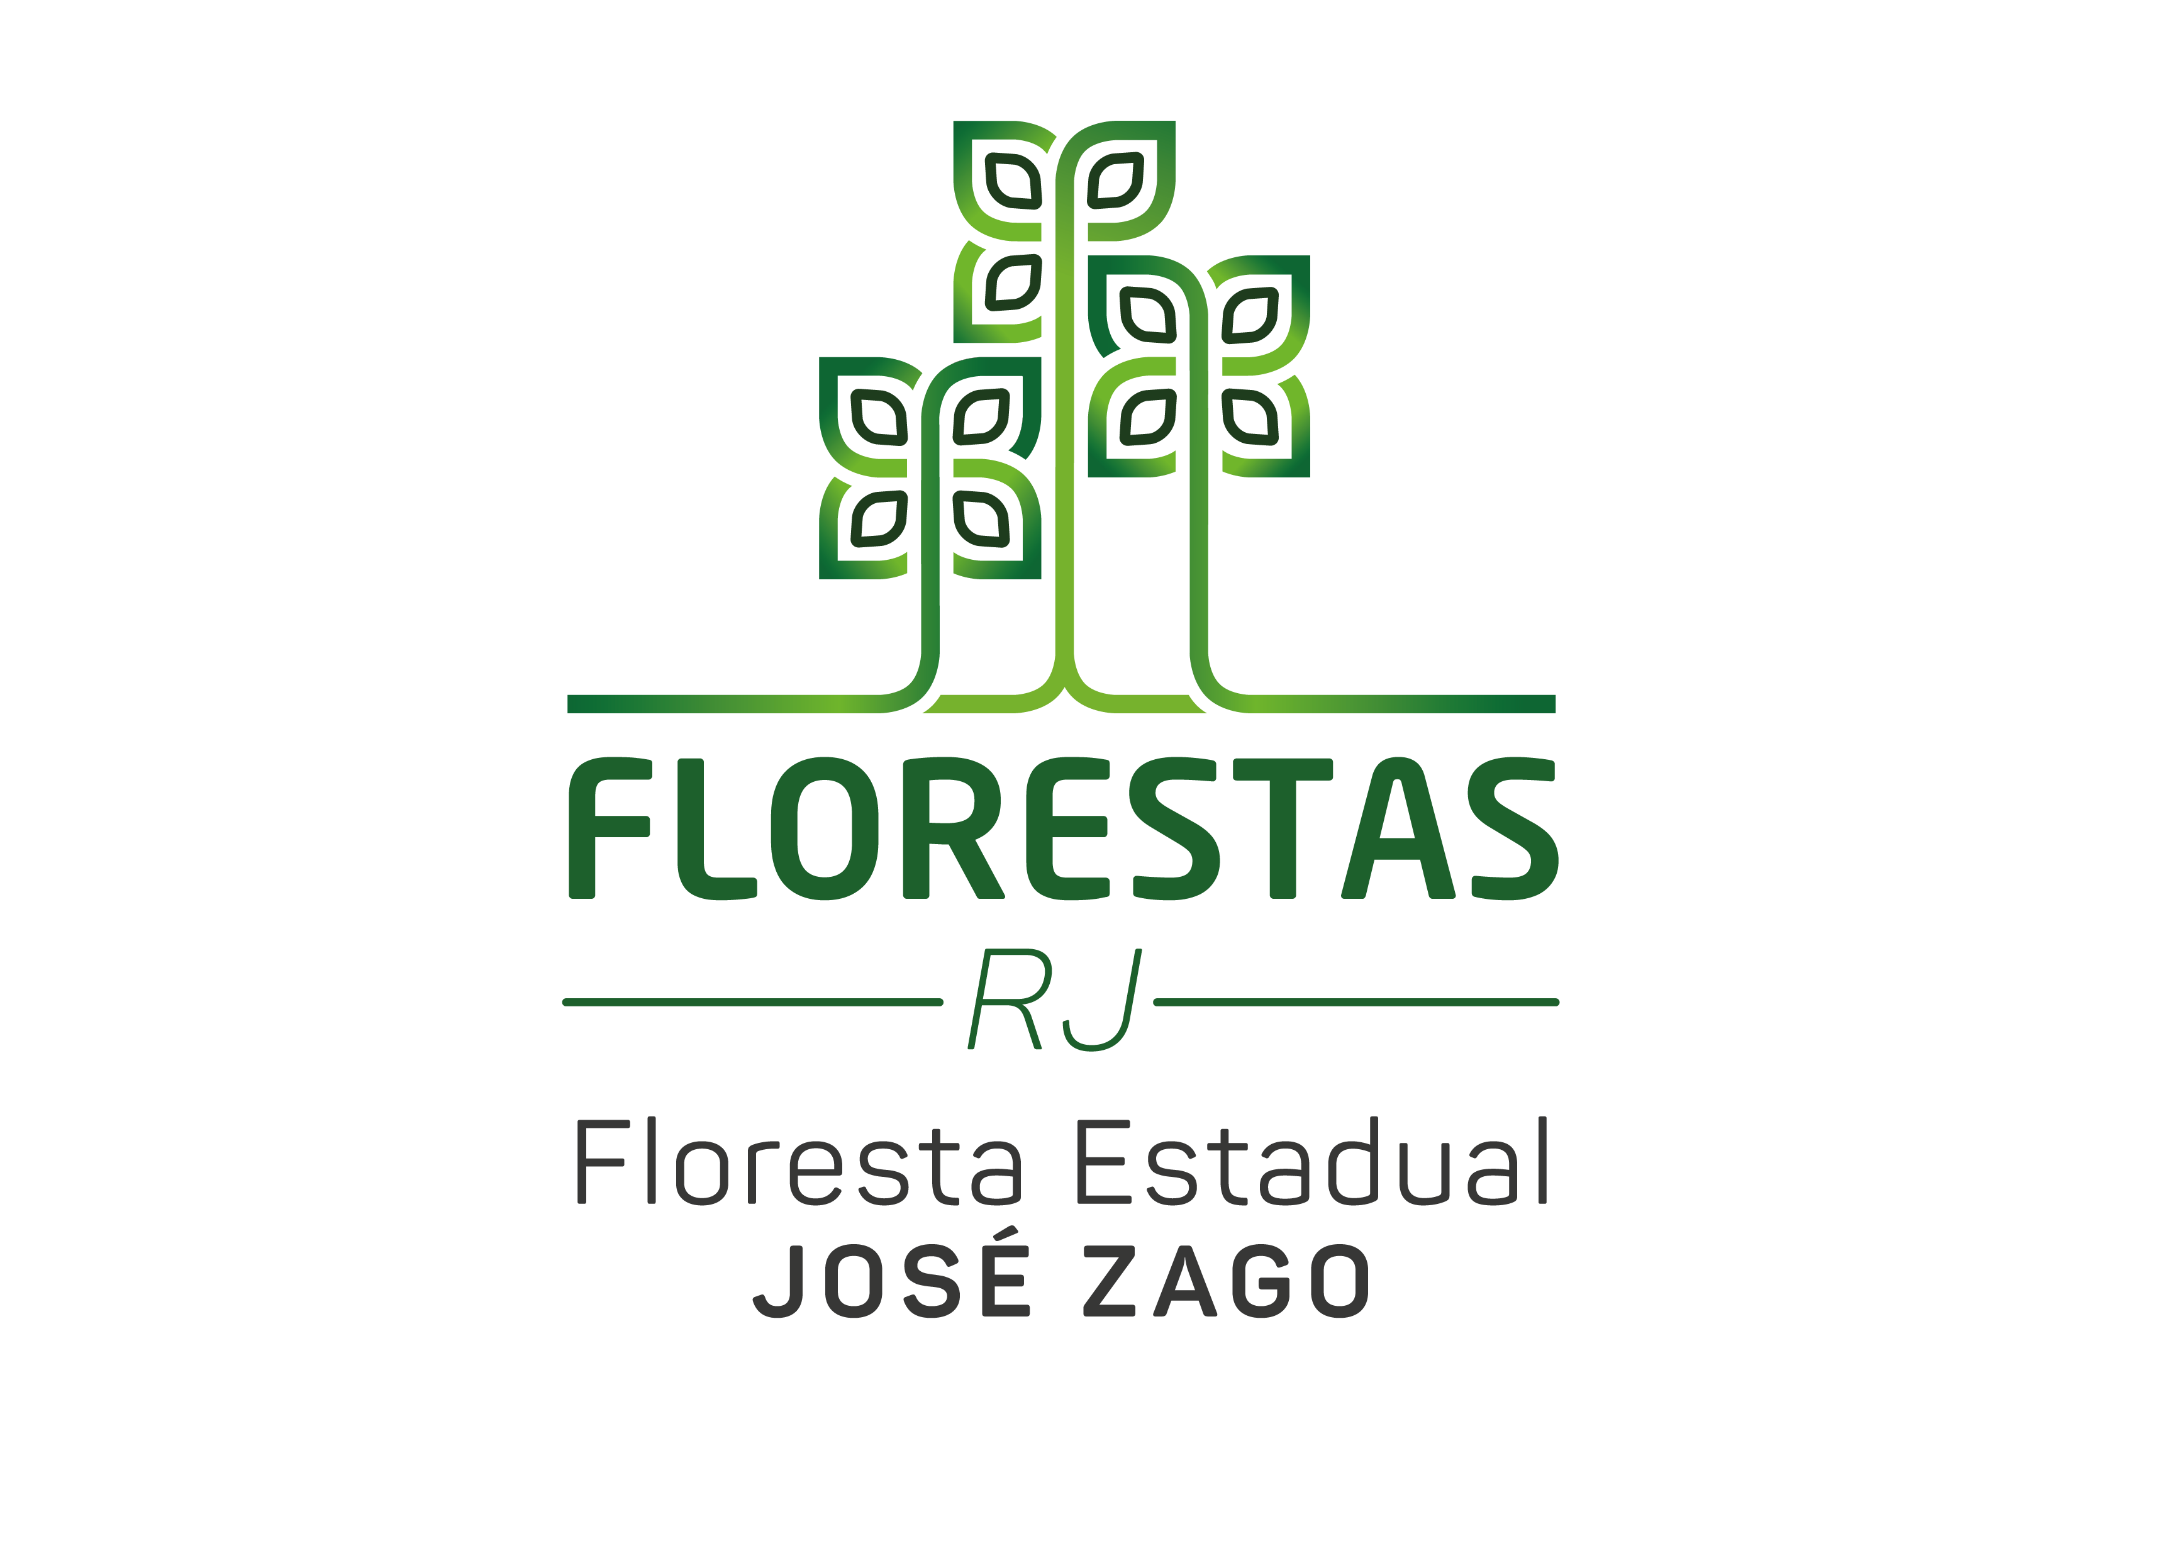 Logos_sisitema_estadual_florestal_integrado_2016-194